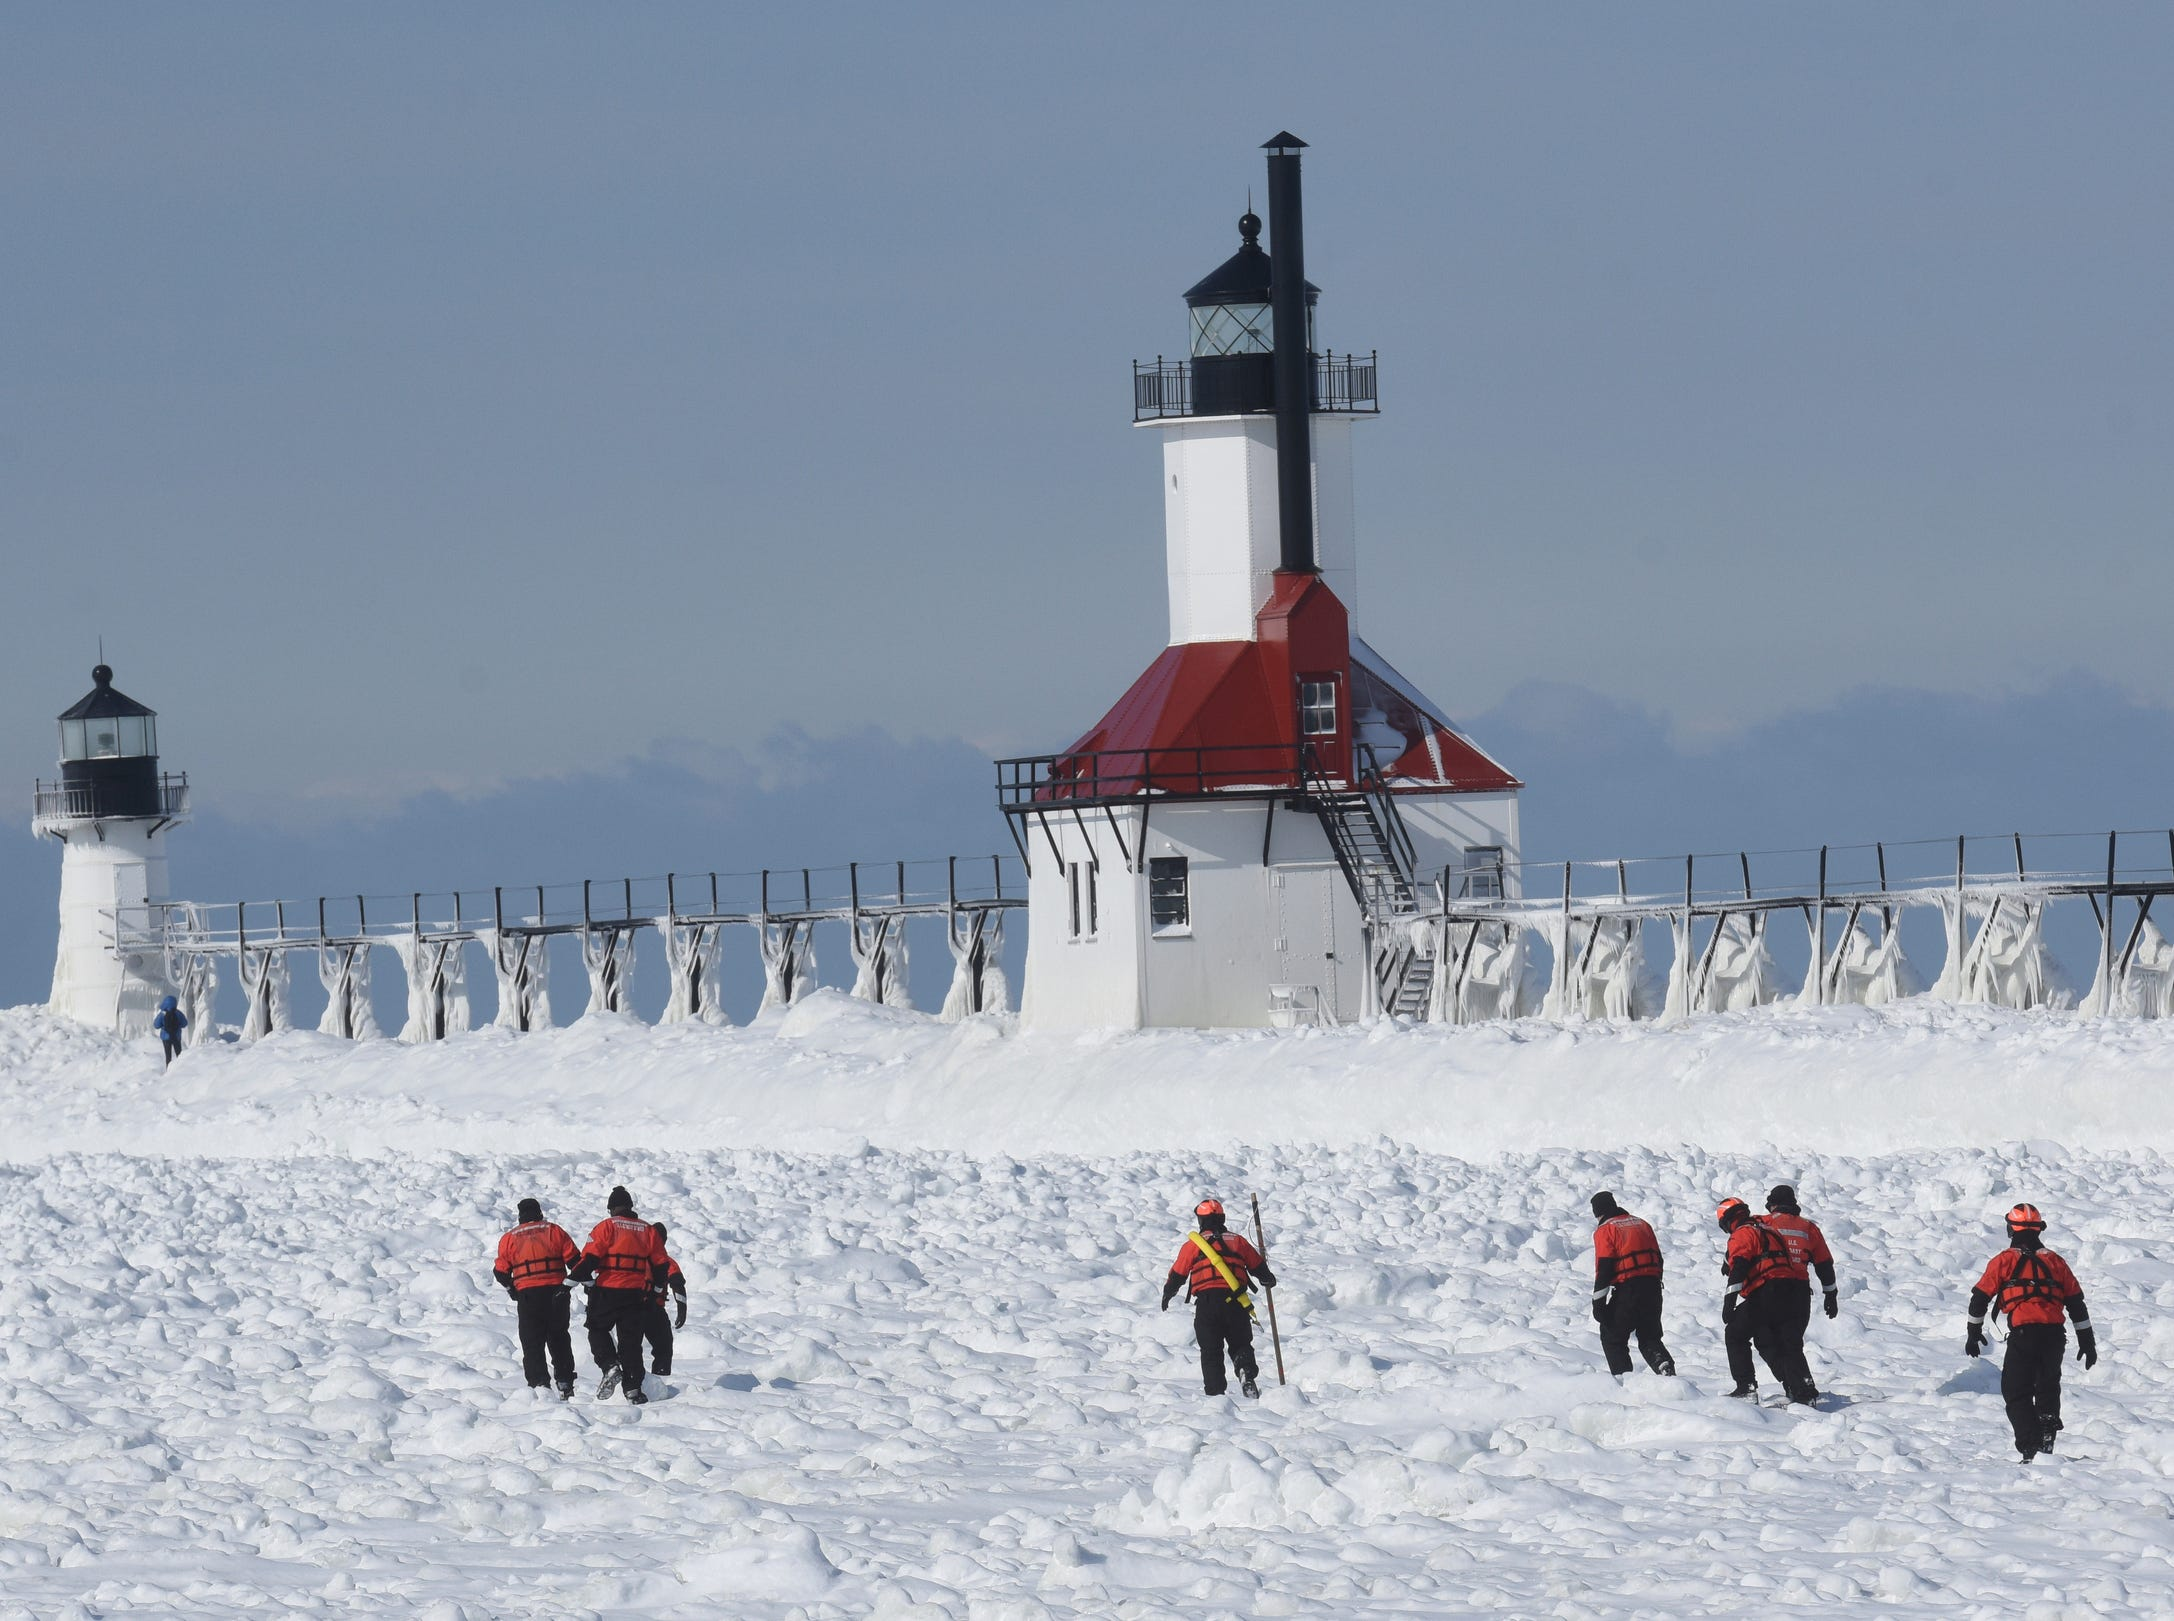 Members of the U.S. Coast Guard Station, in St. Joseph, Mich., cross the frozen St. Joseph River channel as they take part in ice rescue techniques near Lake Michigan and the St. Joseph Lighthouses Friday, Feb. 1, 2019.